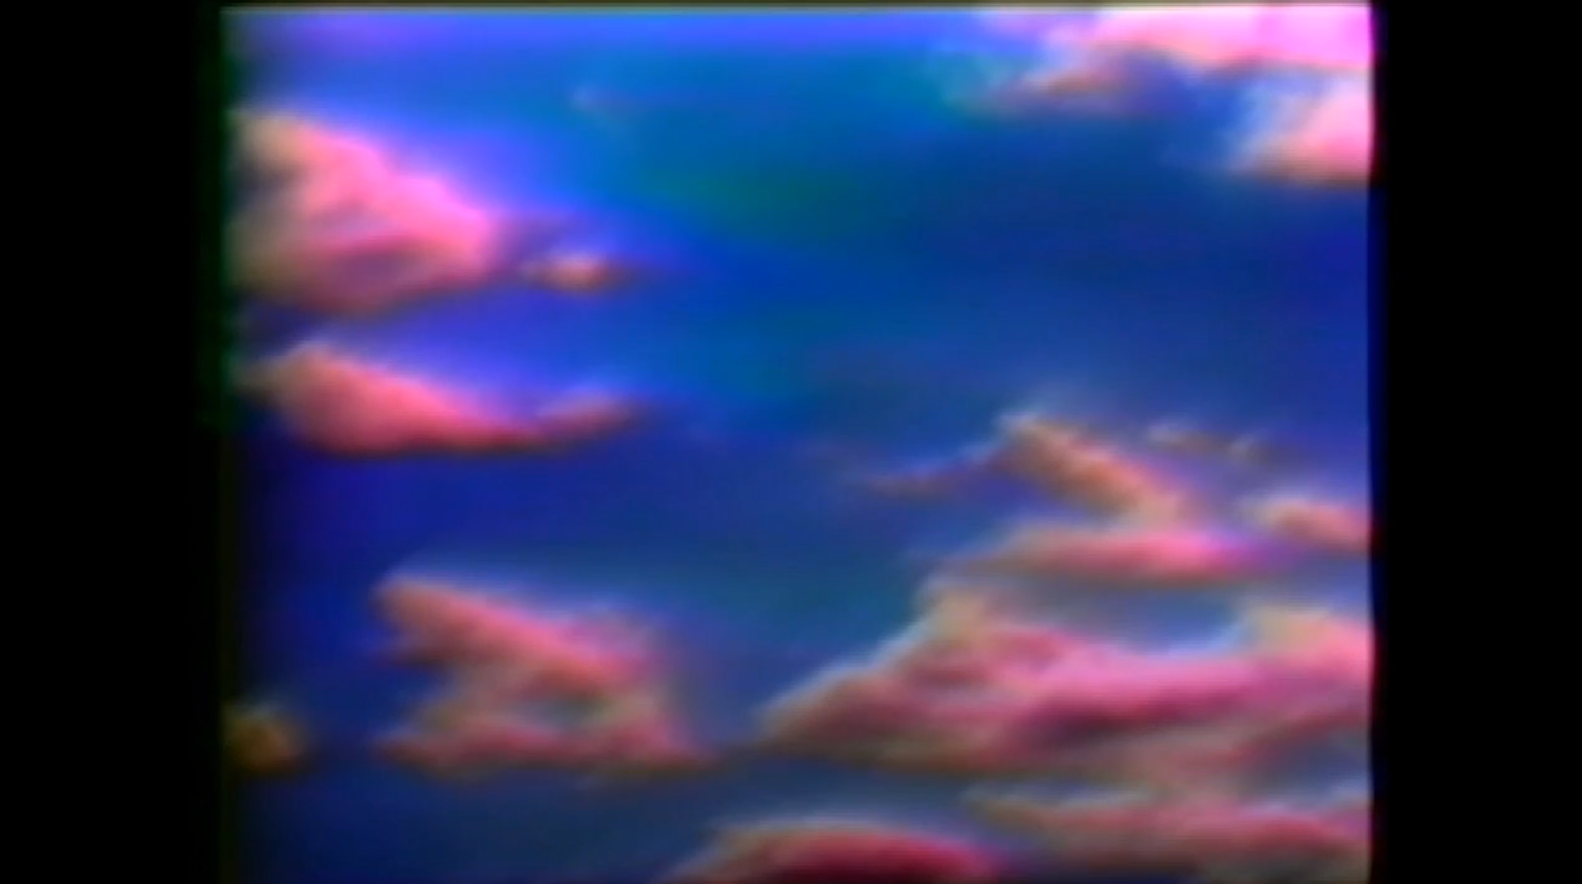 Video still from Violet Cutler's CLOUD MEDITATION - w. The Powers